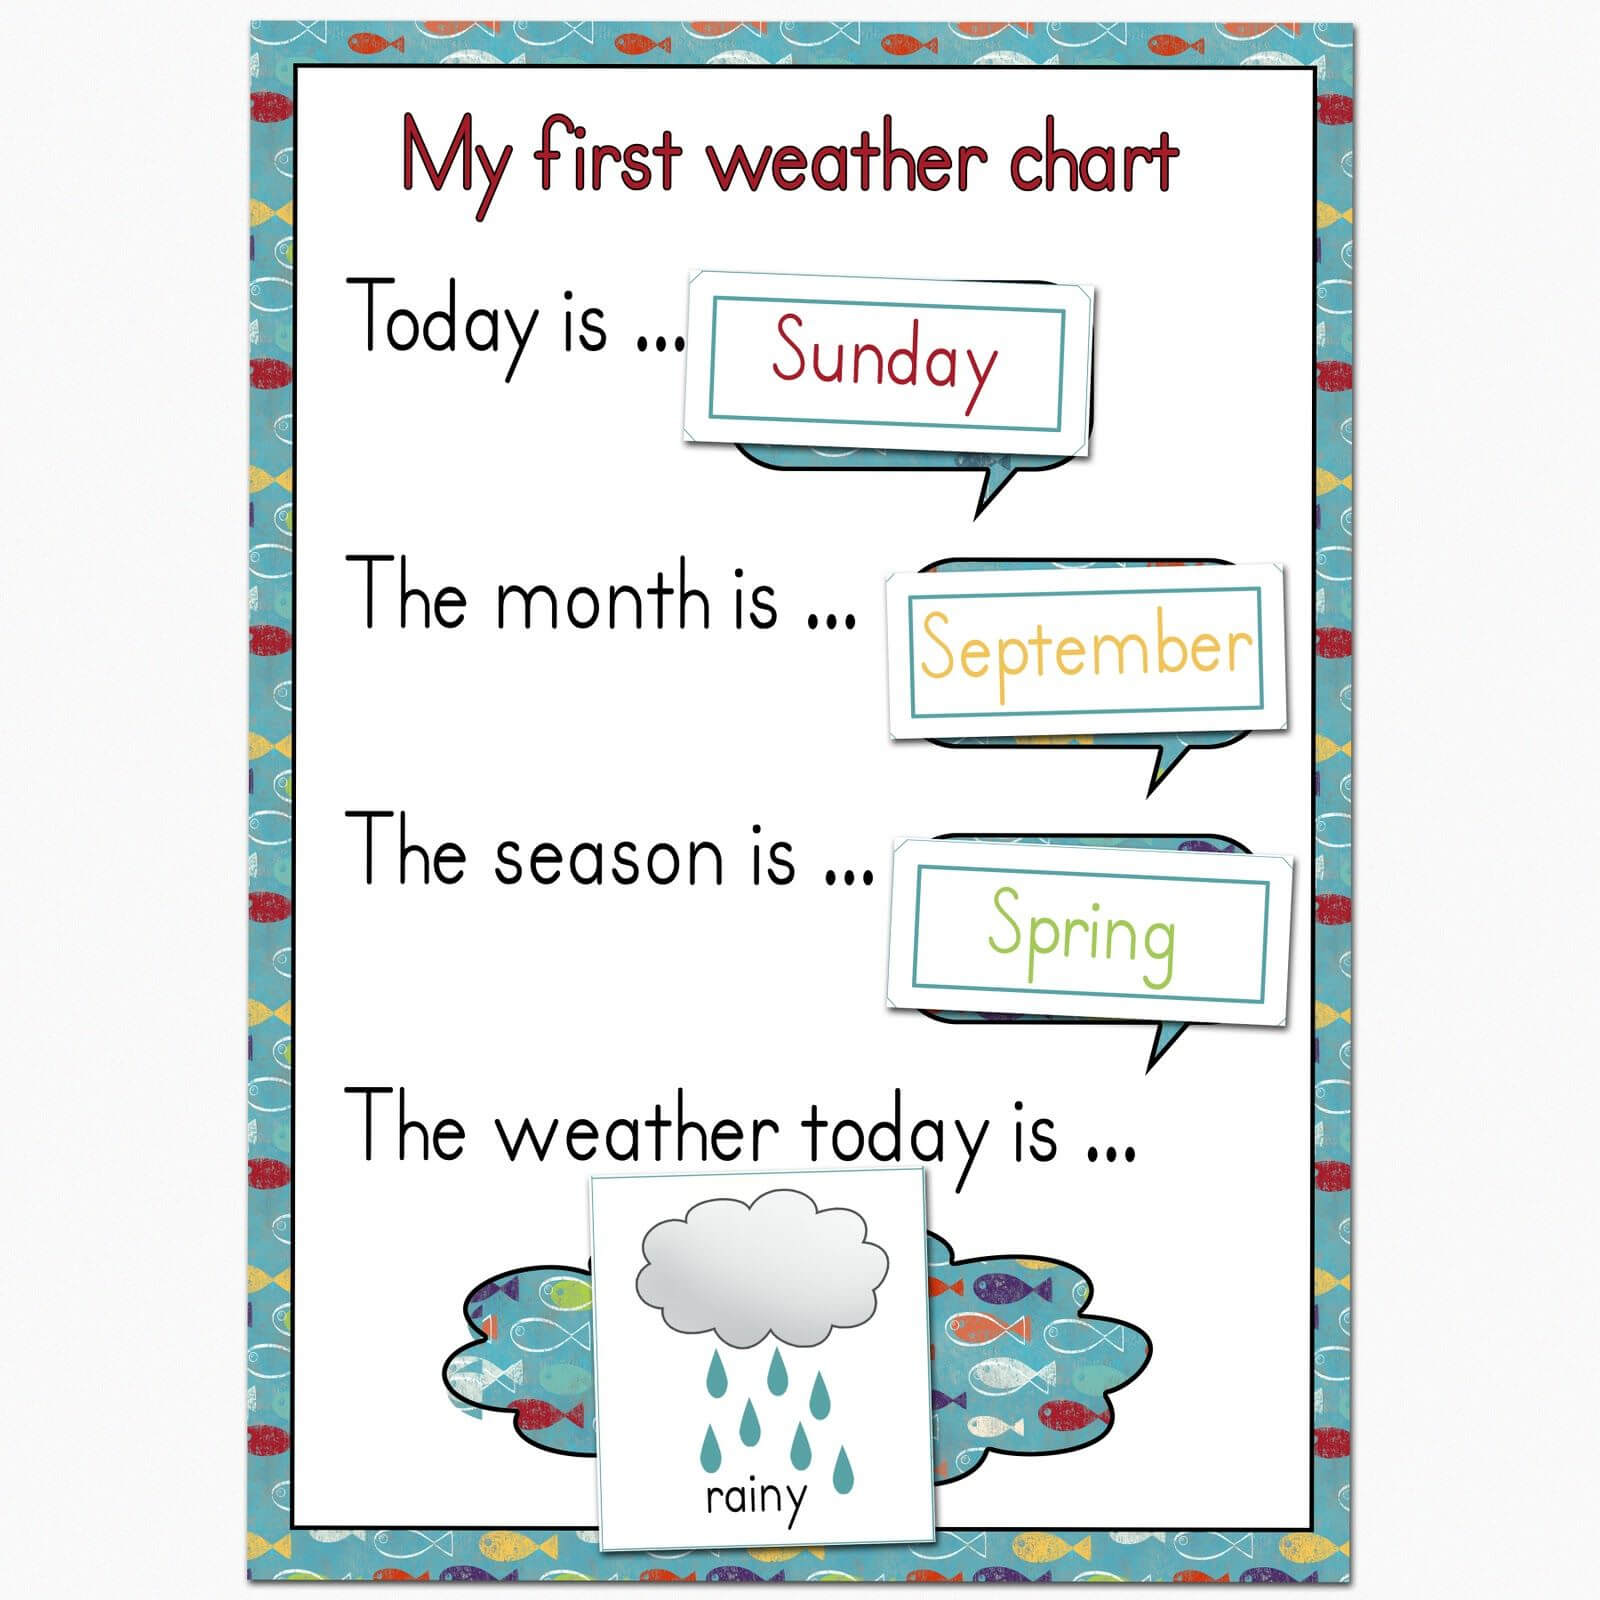 Preschool Weather Chart | Plan To Keep Mine On The Fridge In Kids Weather Report Template